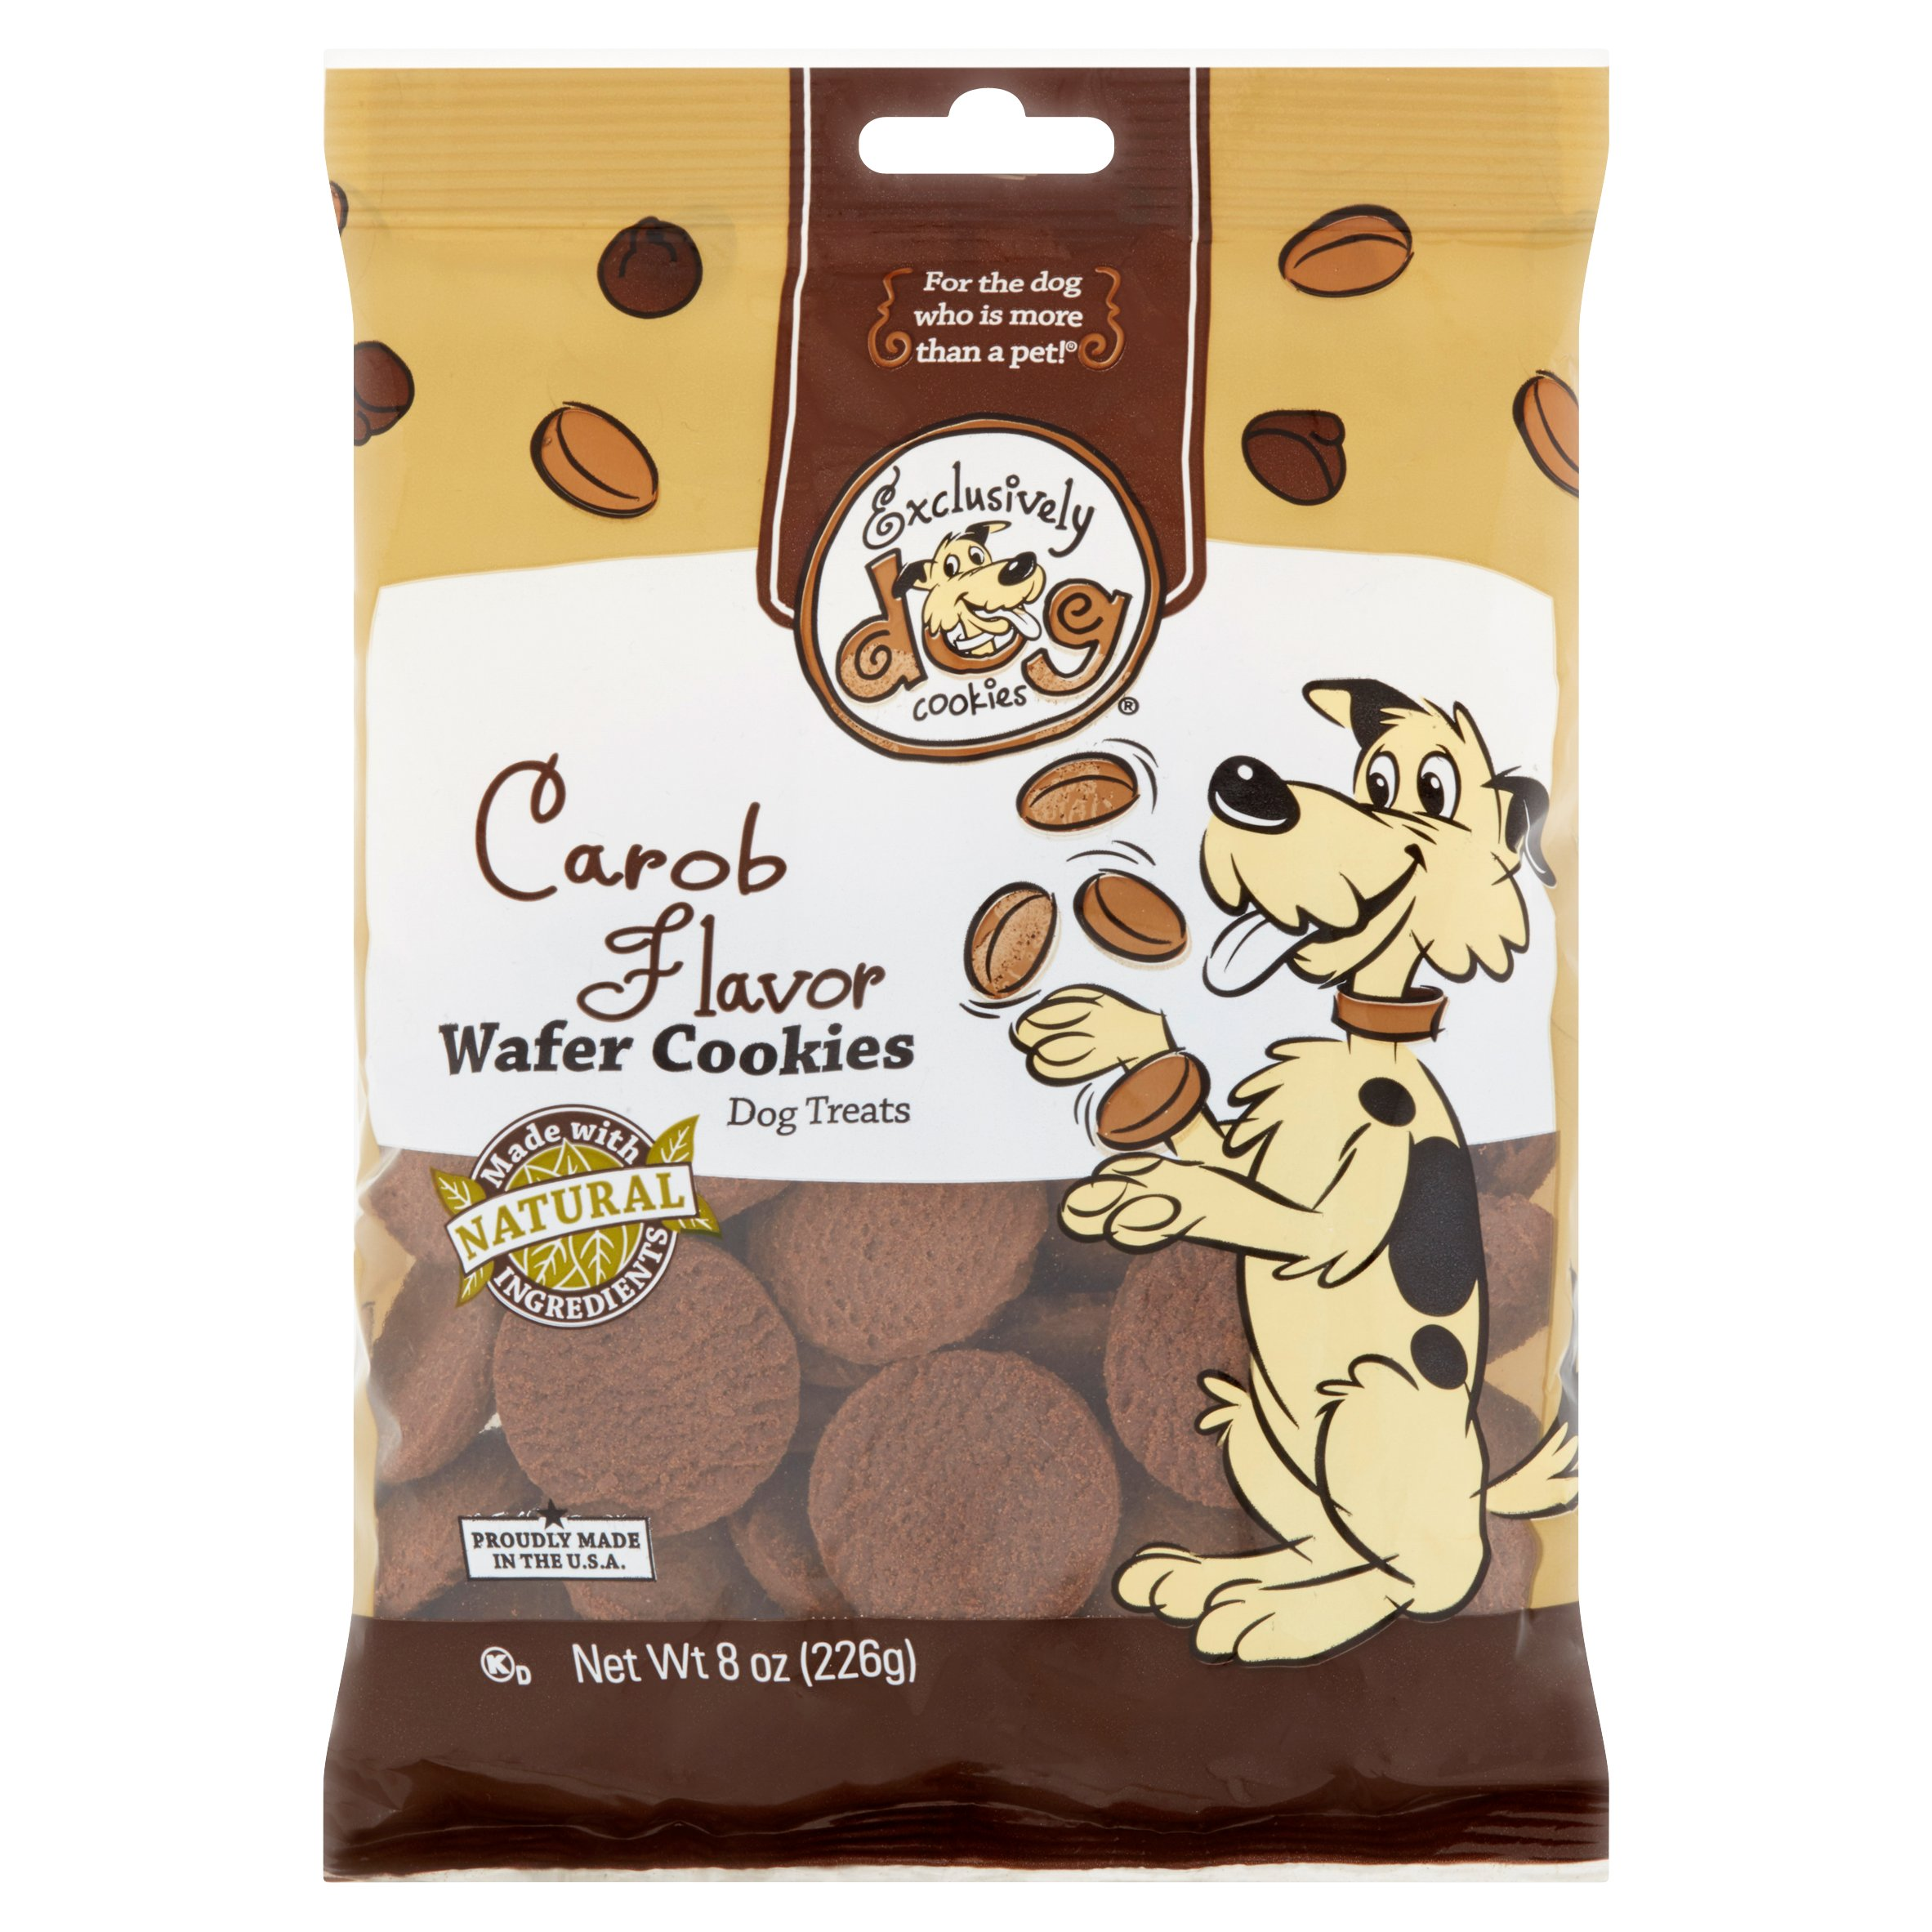 Exclusively Dog Cookies Carob Flavor Wafer Cookies Dog Treats, 8 oz by EXCLUSIVELY PET, INC.